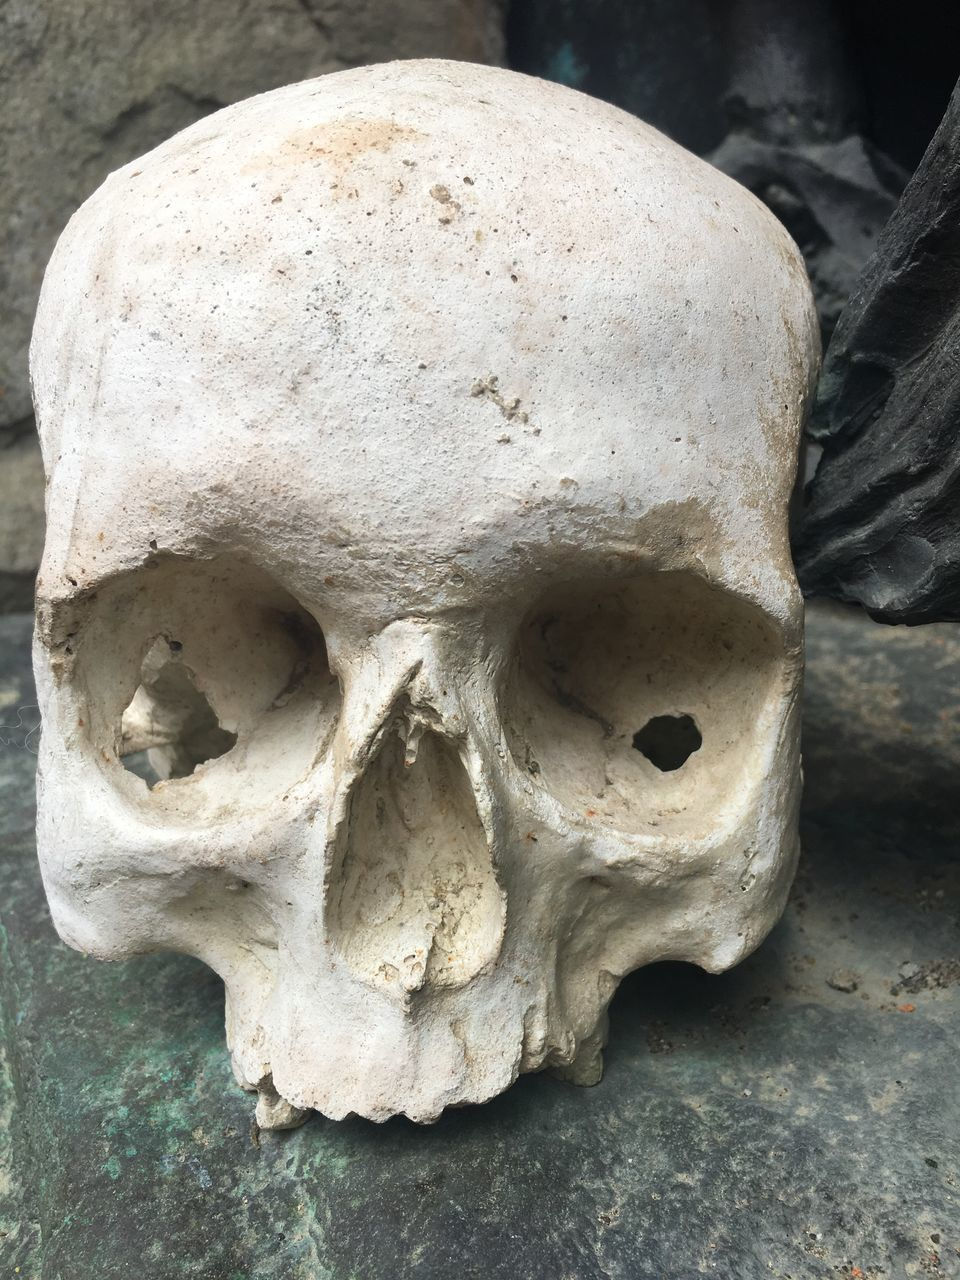 CLOSE-UP OF HUMAN SKULL ON OLD CROPPED HAND